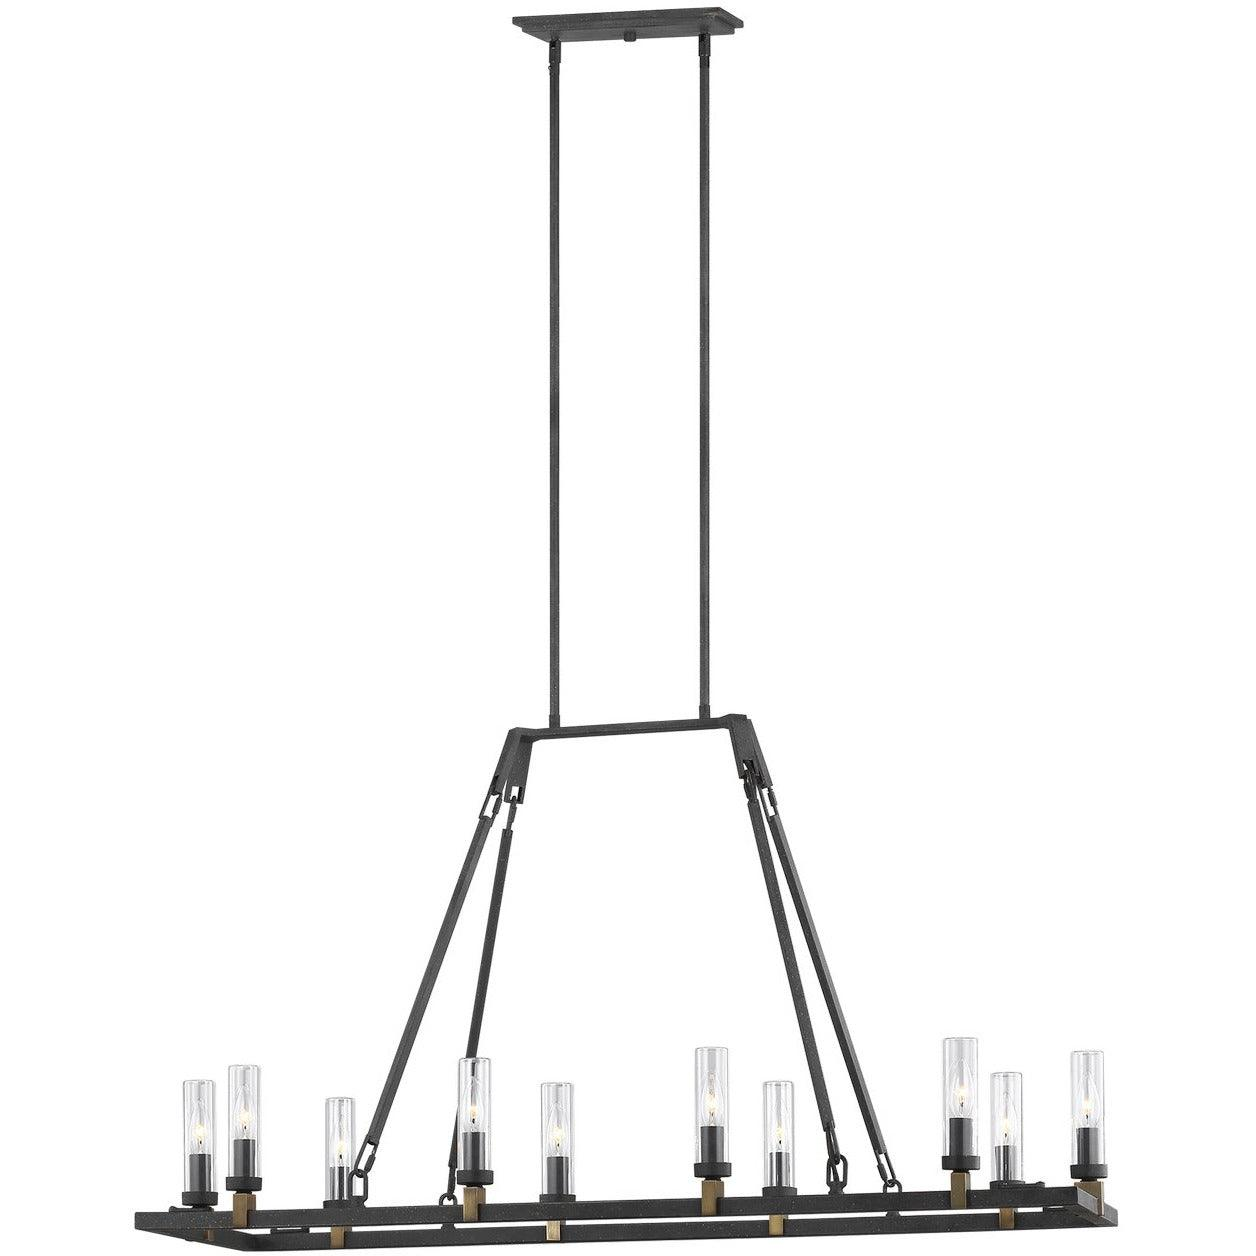 Feiss - OLF3218/10AF - Generation Lighting - Landen - Antique Forged Iron